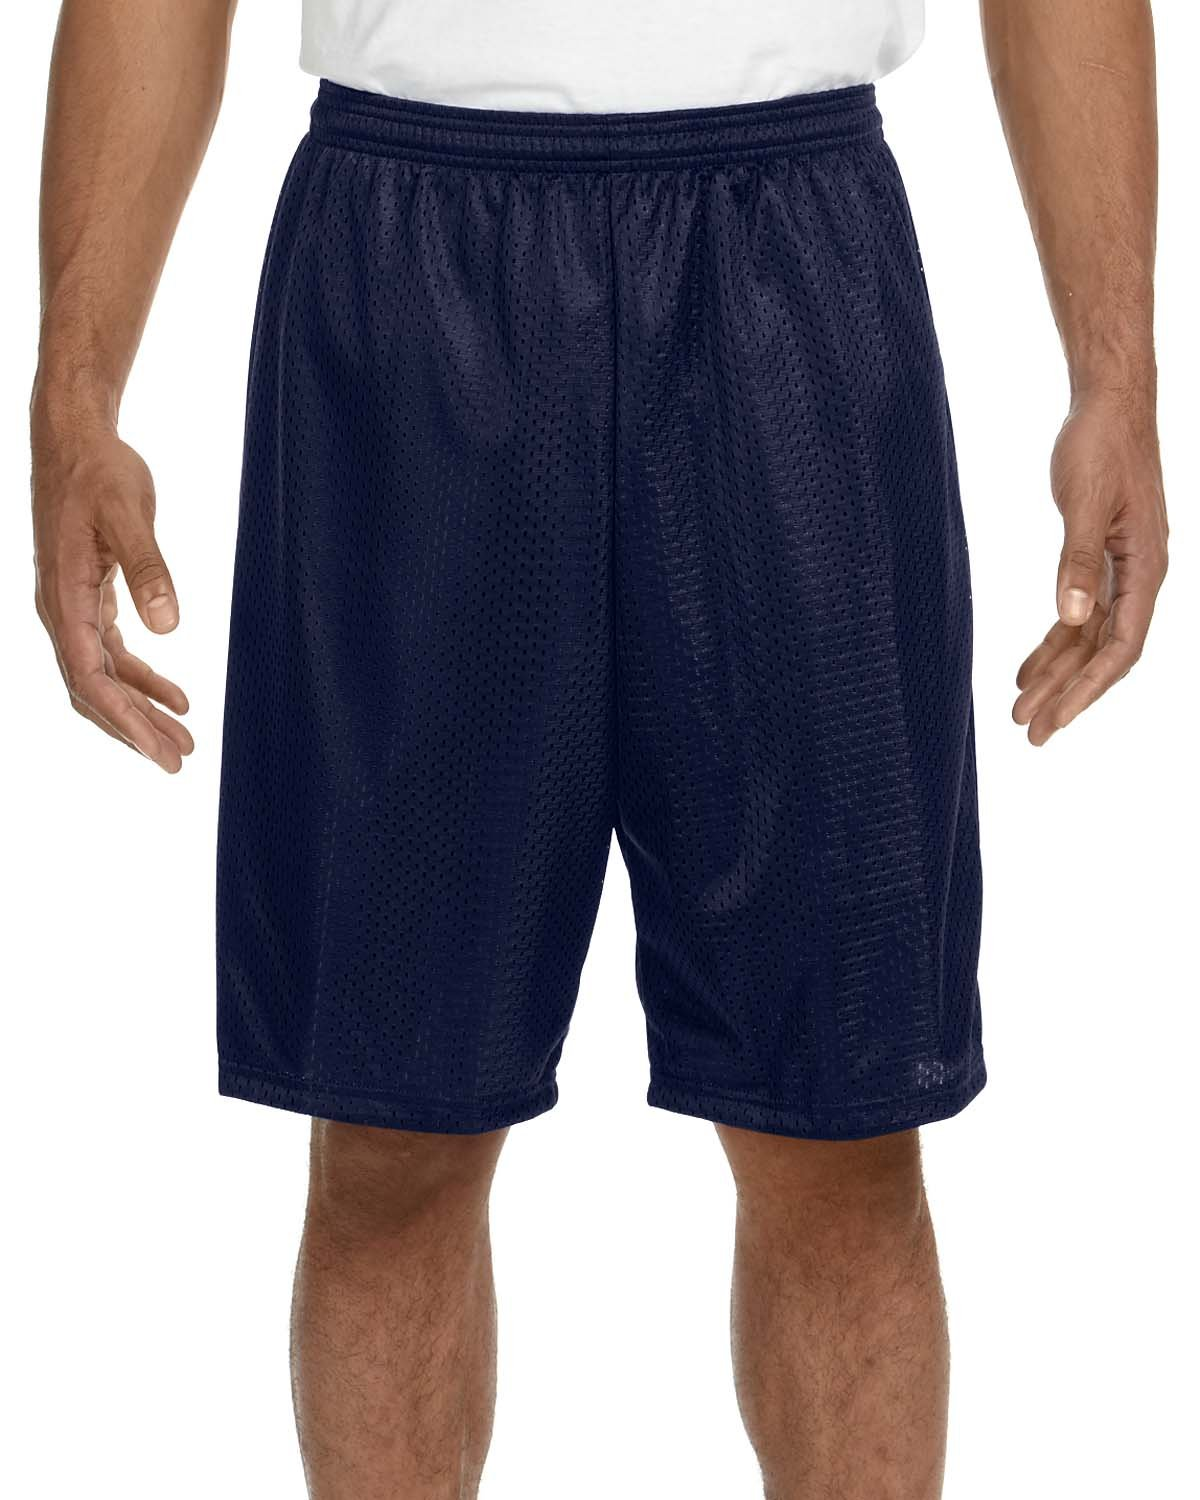 A4 Adult Tricot Mesh Short NAVY